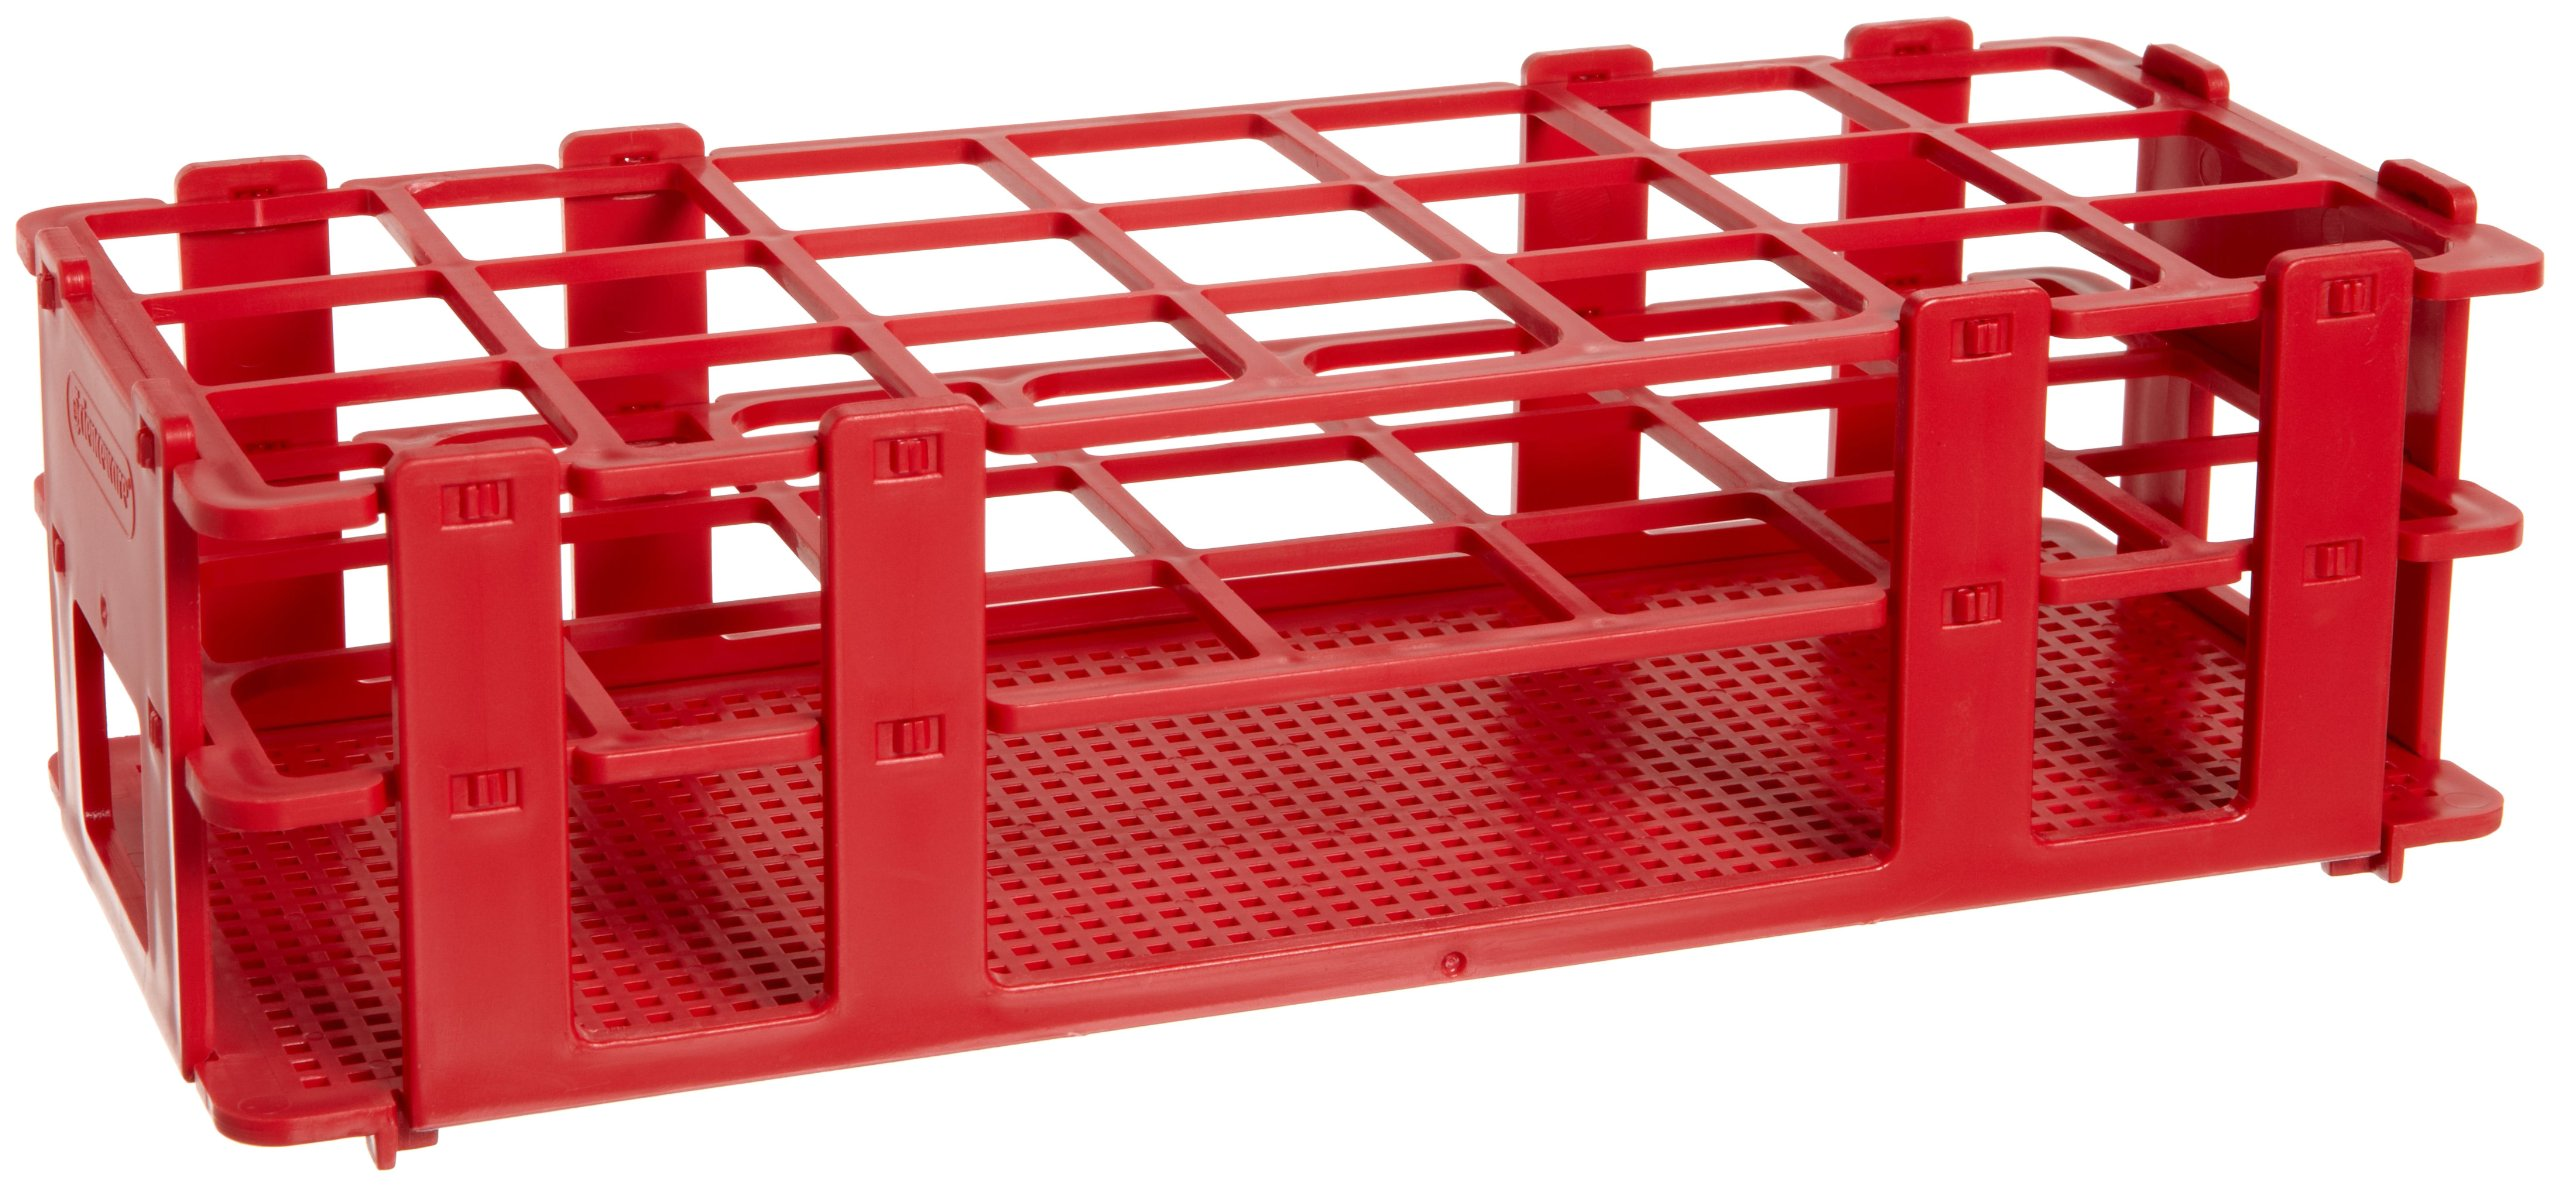 Bel-Art F18746-0004 No-Wire Test Tube Rack; 25-30mm, 21 Places, 9.7 x 4.1 x 2.5 in., Polypropylene, Red